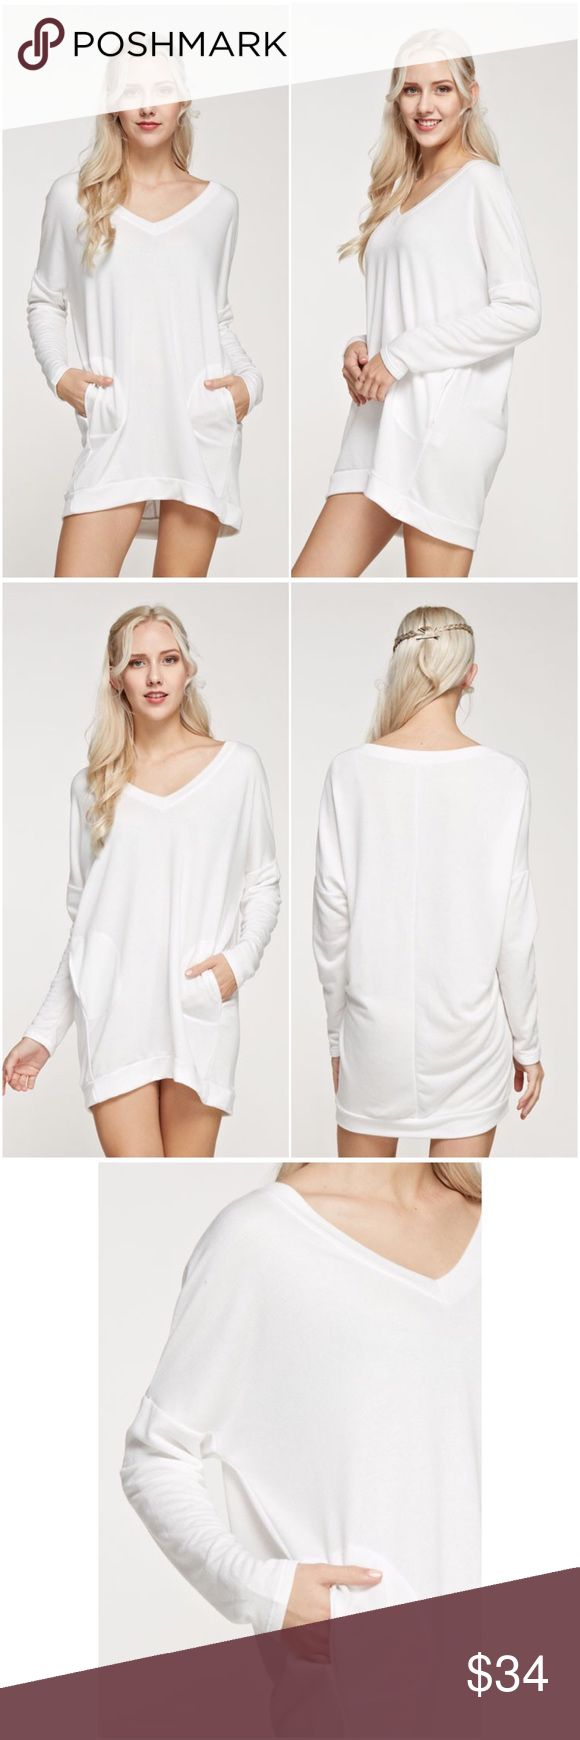 🆕 White French Terry Tunic Super comfy, white french terry tunic top that can be worn as a dress (as pictured) with v neckline and side pockets. Perfect for lounging or pair with your fave jeans or leggings for a casual look. Tops